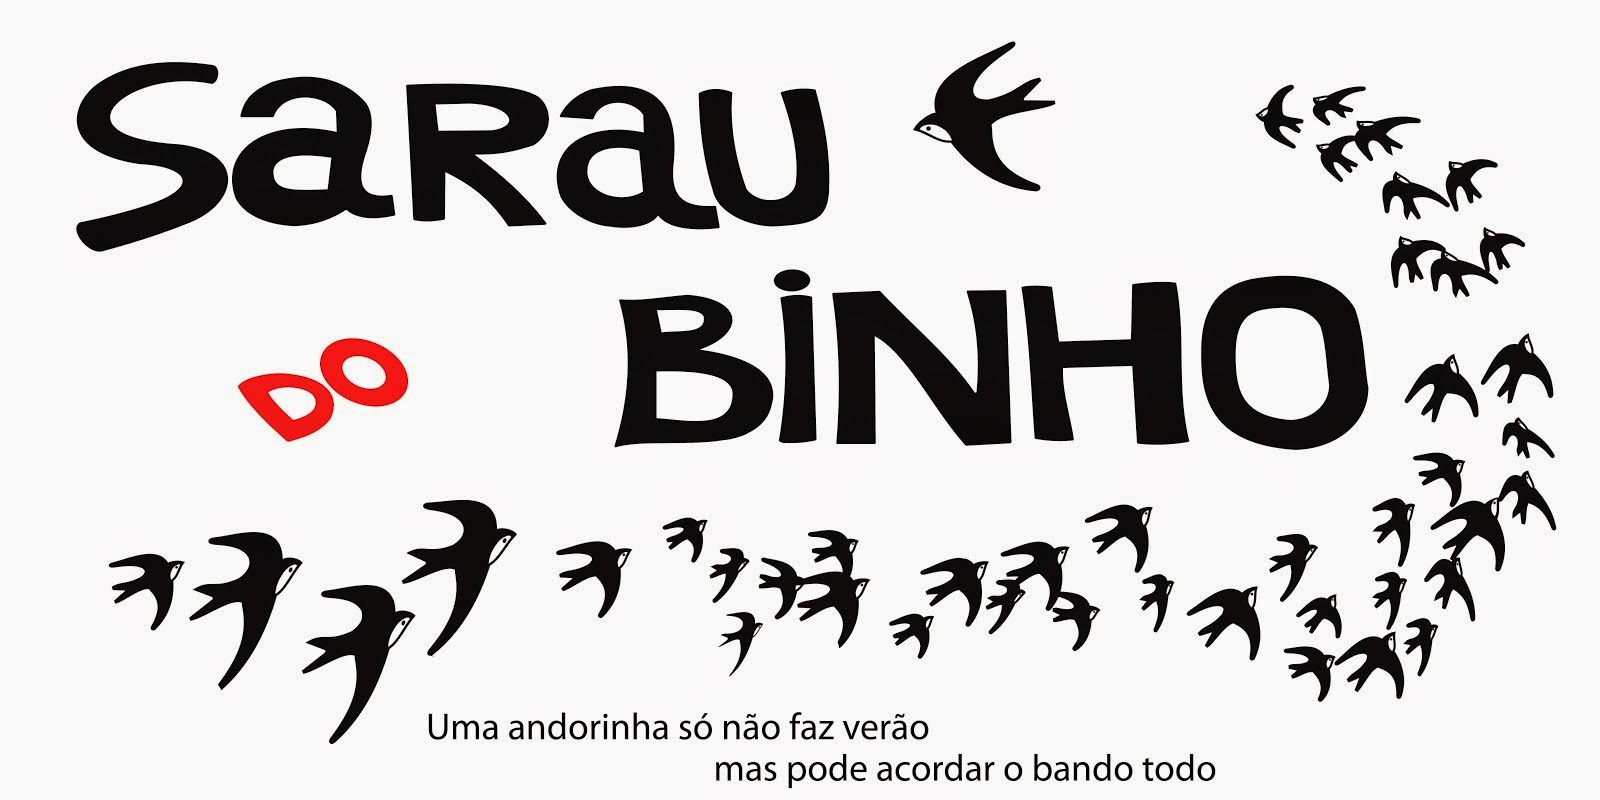 Sarau do Binho